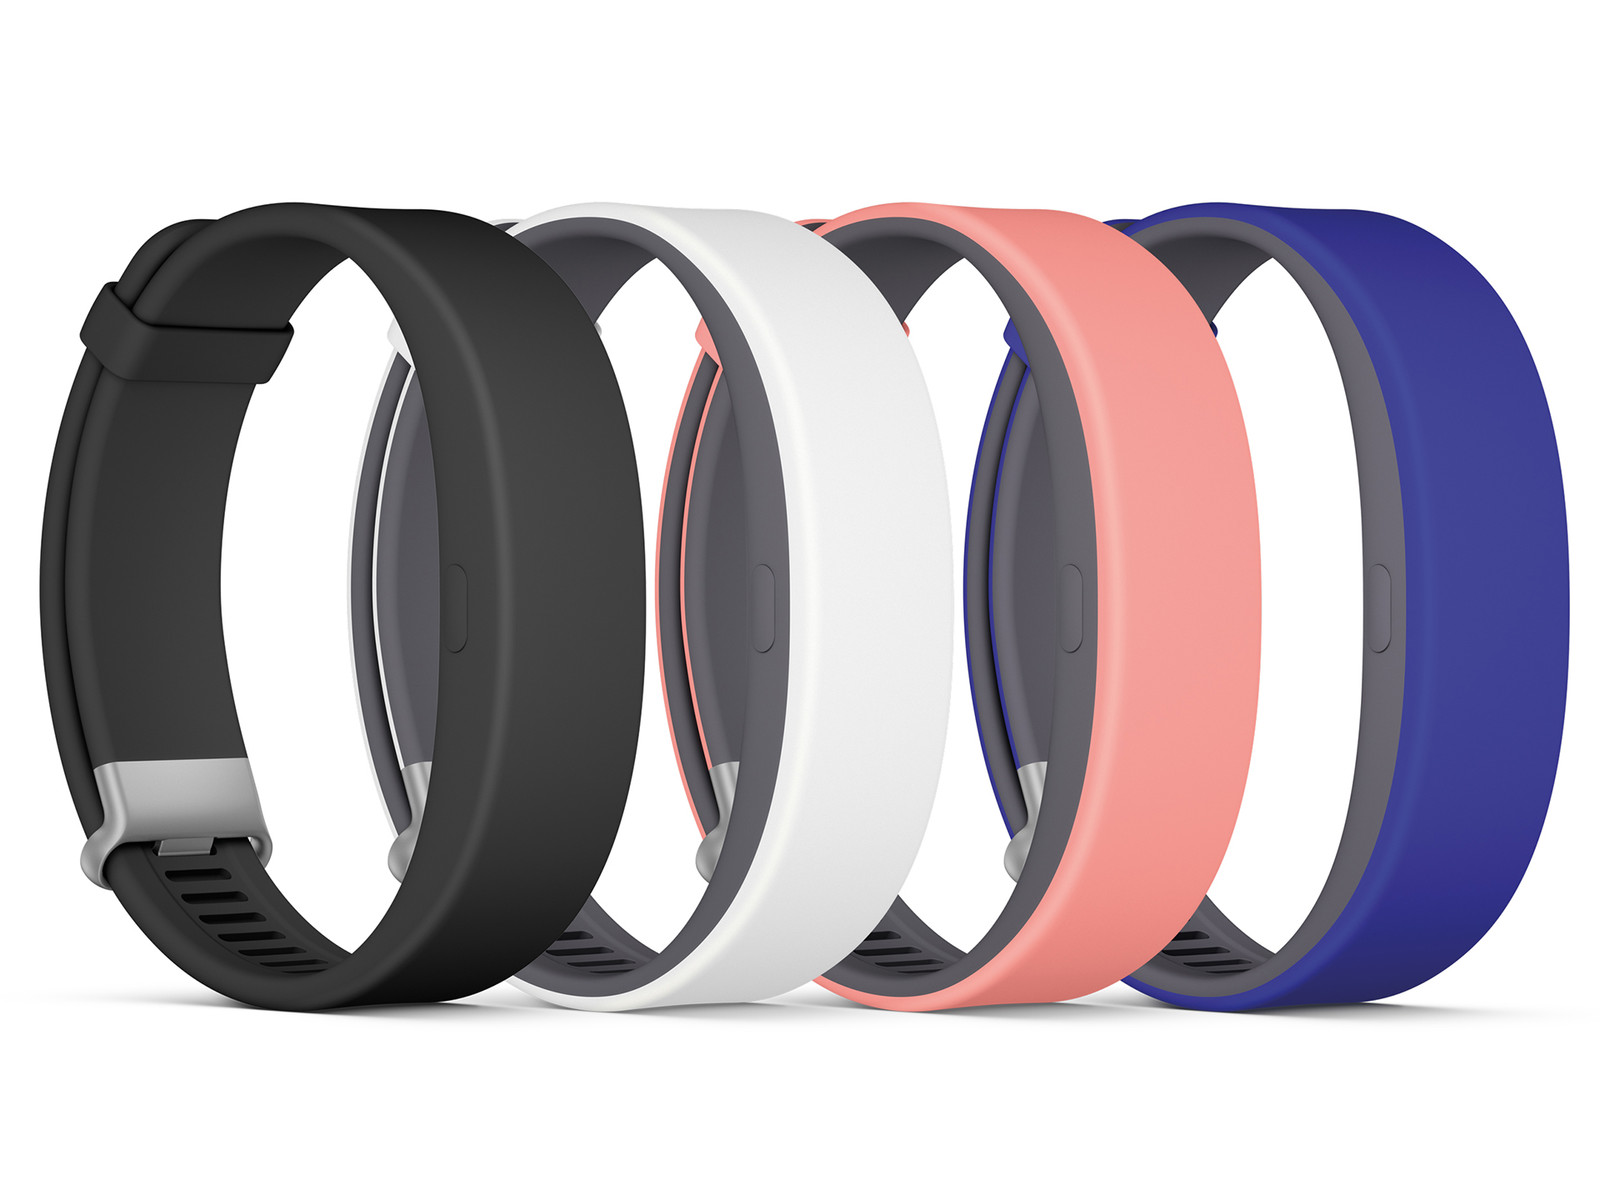 Sony SmartBand 2 coming late September